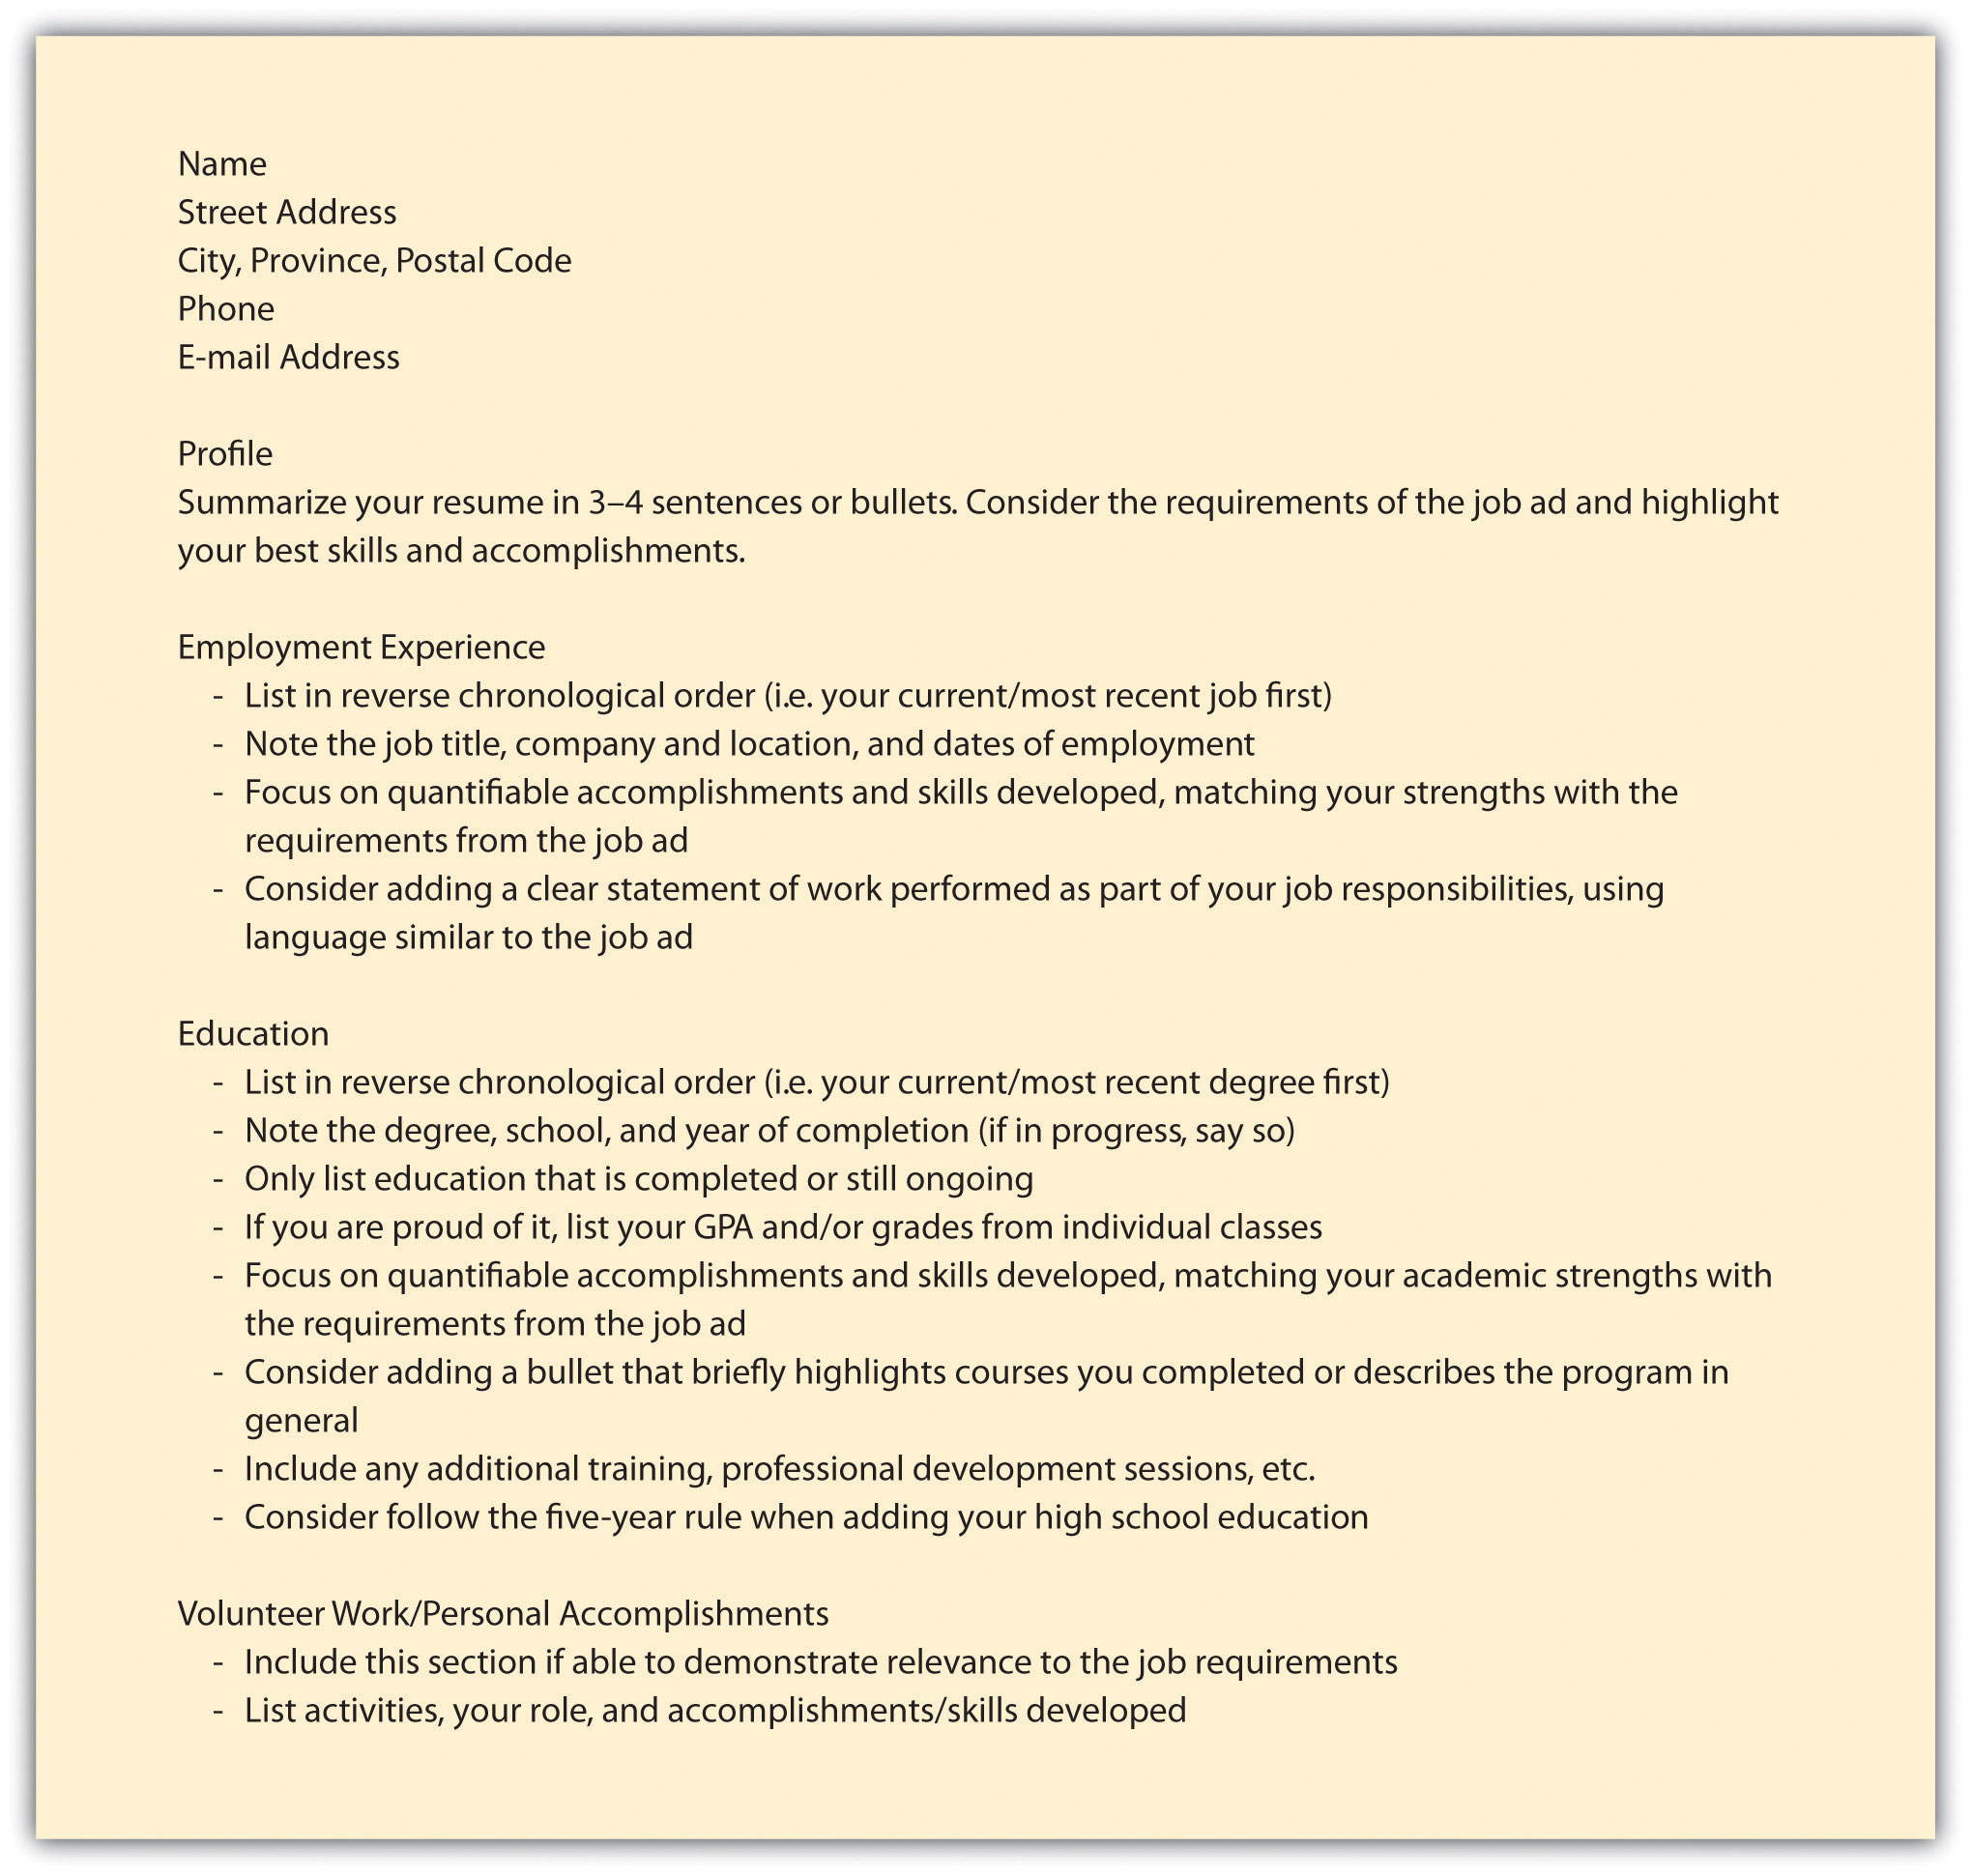 Job Posting Letter For Teachers